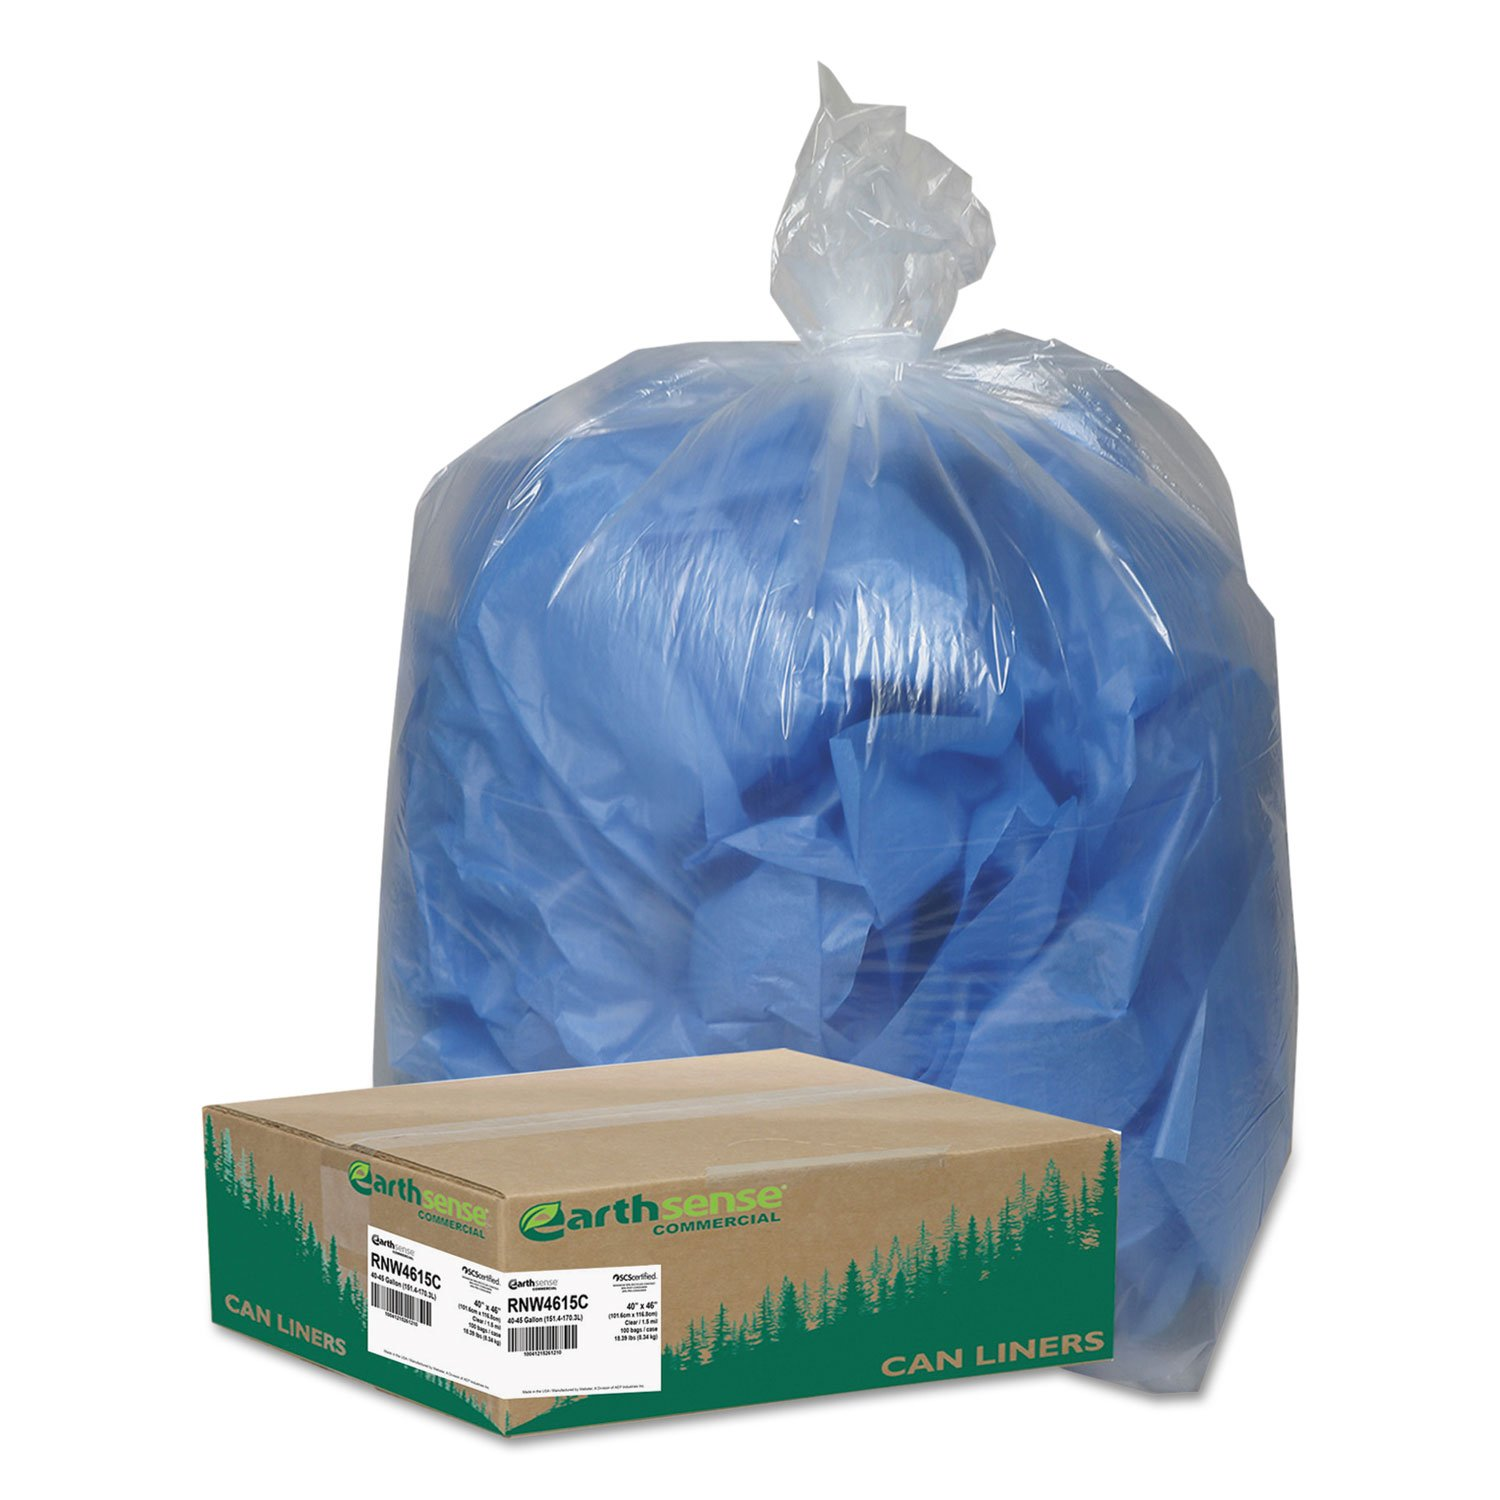 Webster WBIRNW4615C Coreless Heavy-Duty Can Liners, Low Density, Resin, 45 gal, 40'' x 46'', 1.50 mil (38 µm) Thickness, Clear (Pack of 100)